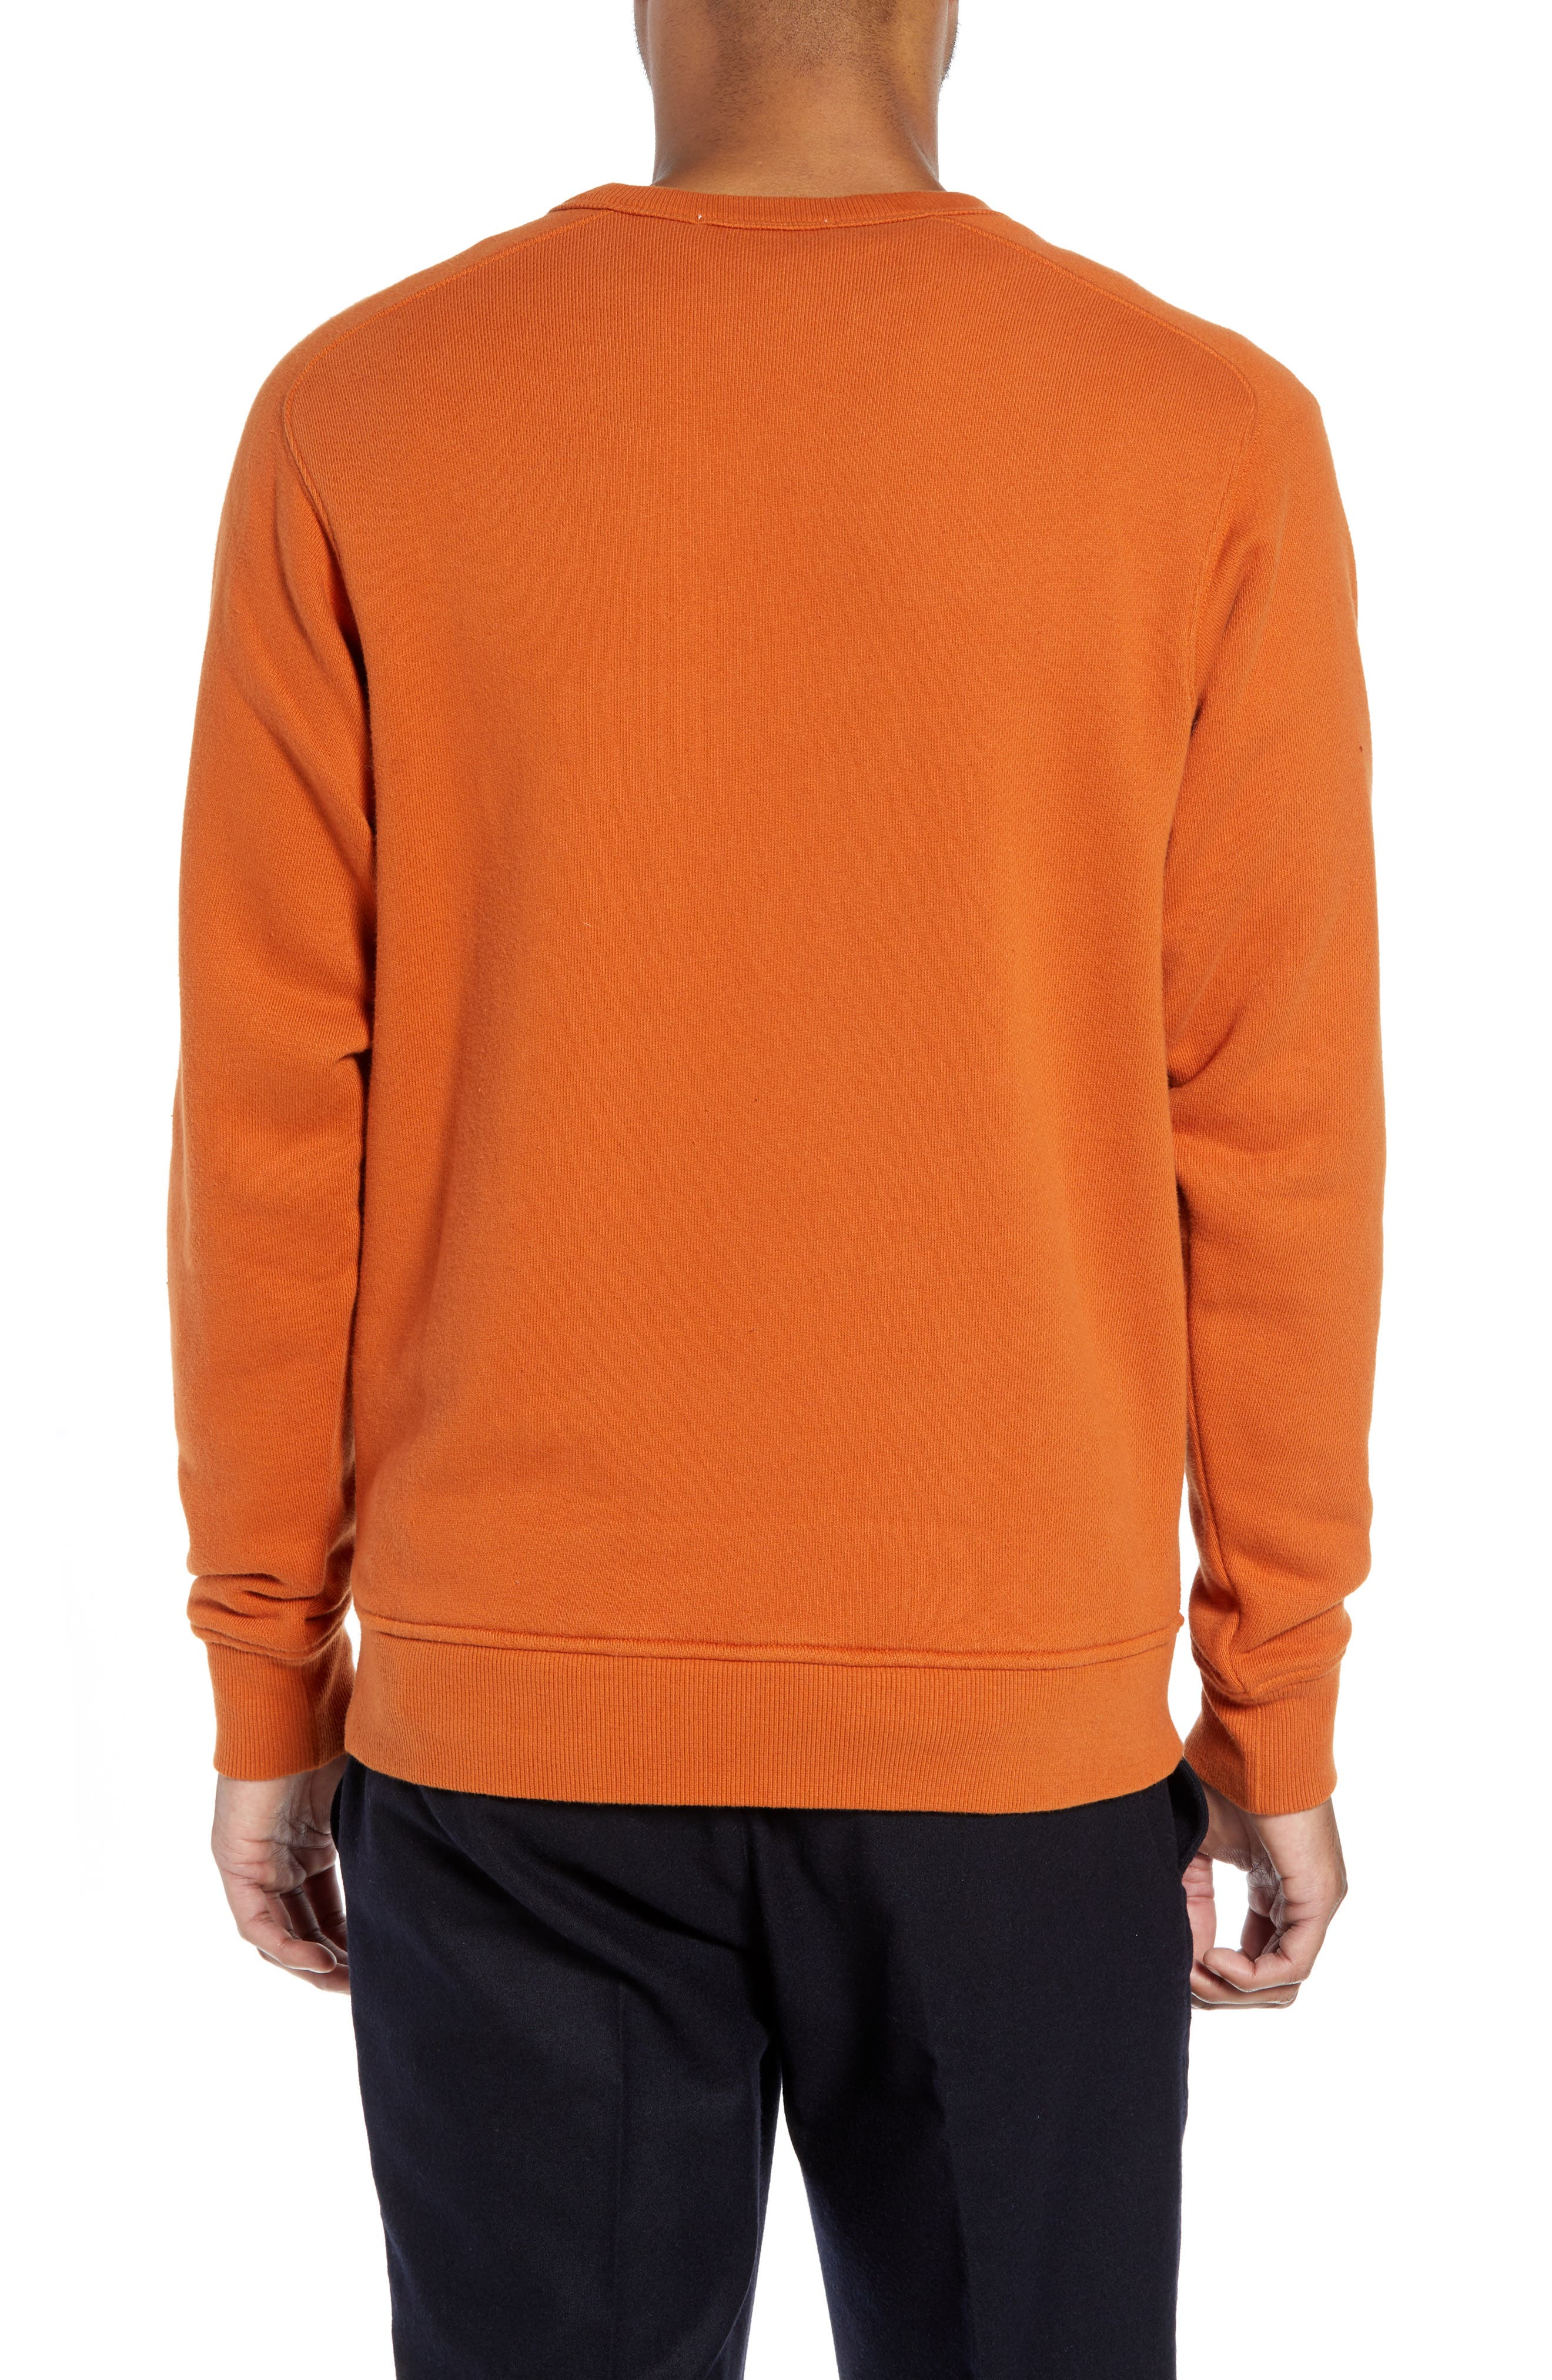 Almost Grown Crewneck Sweatshirt,                             Alternate thumbnail 2, color,                             RUST